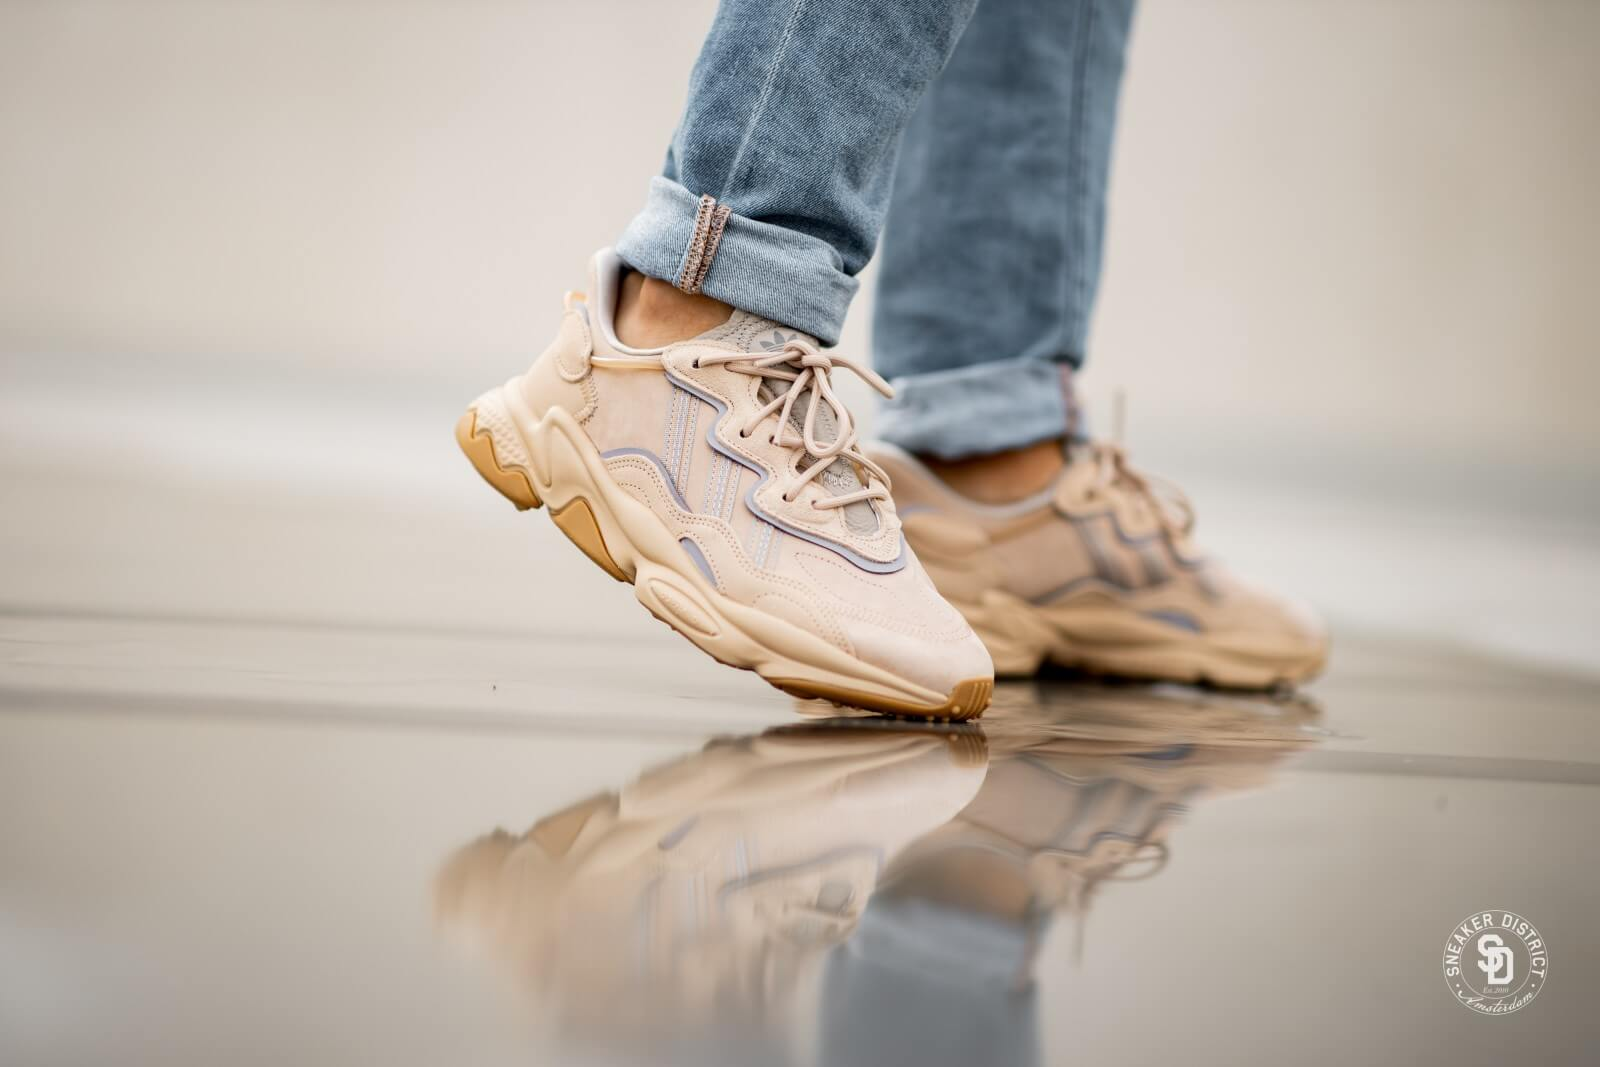 Adidas Ozweego ST Pale Nude/Light Brown